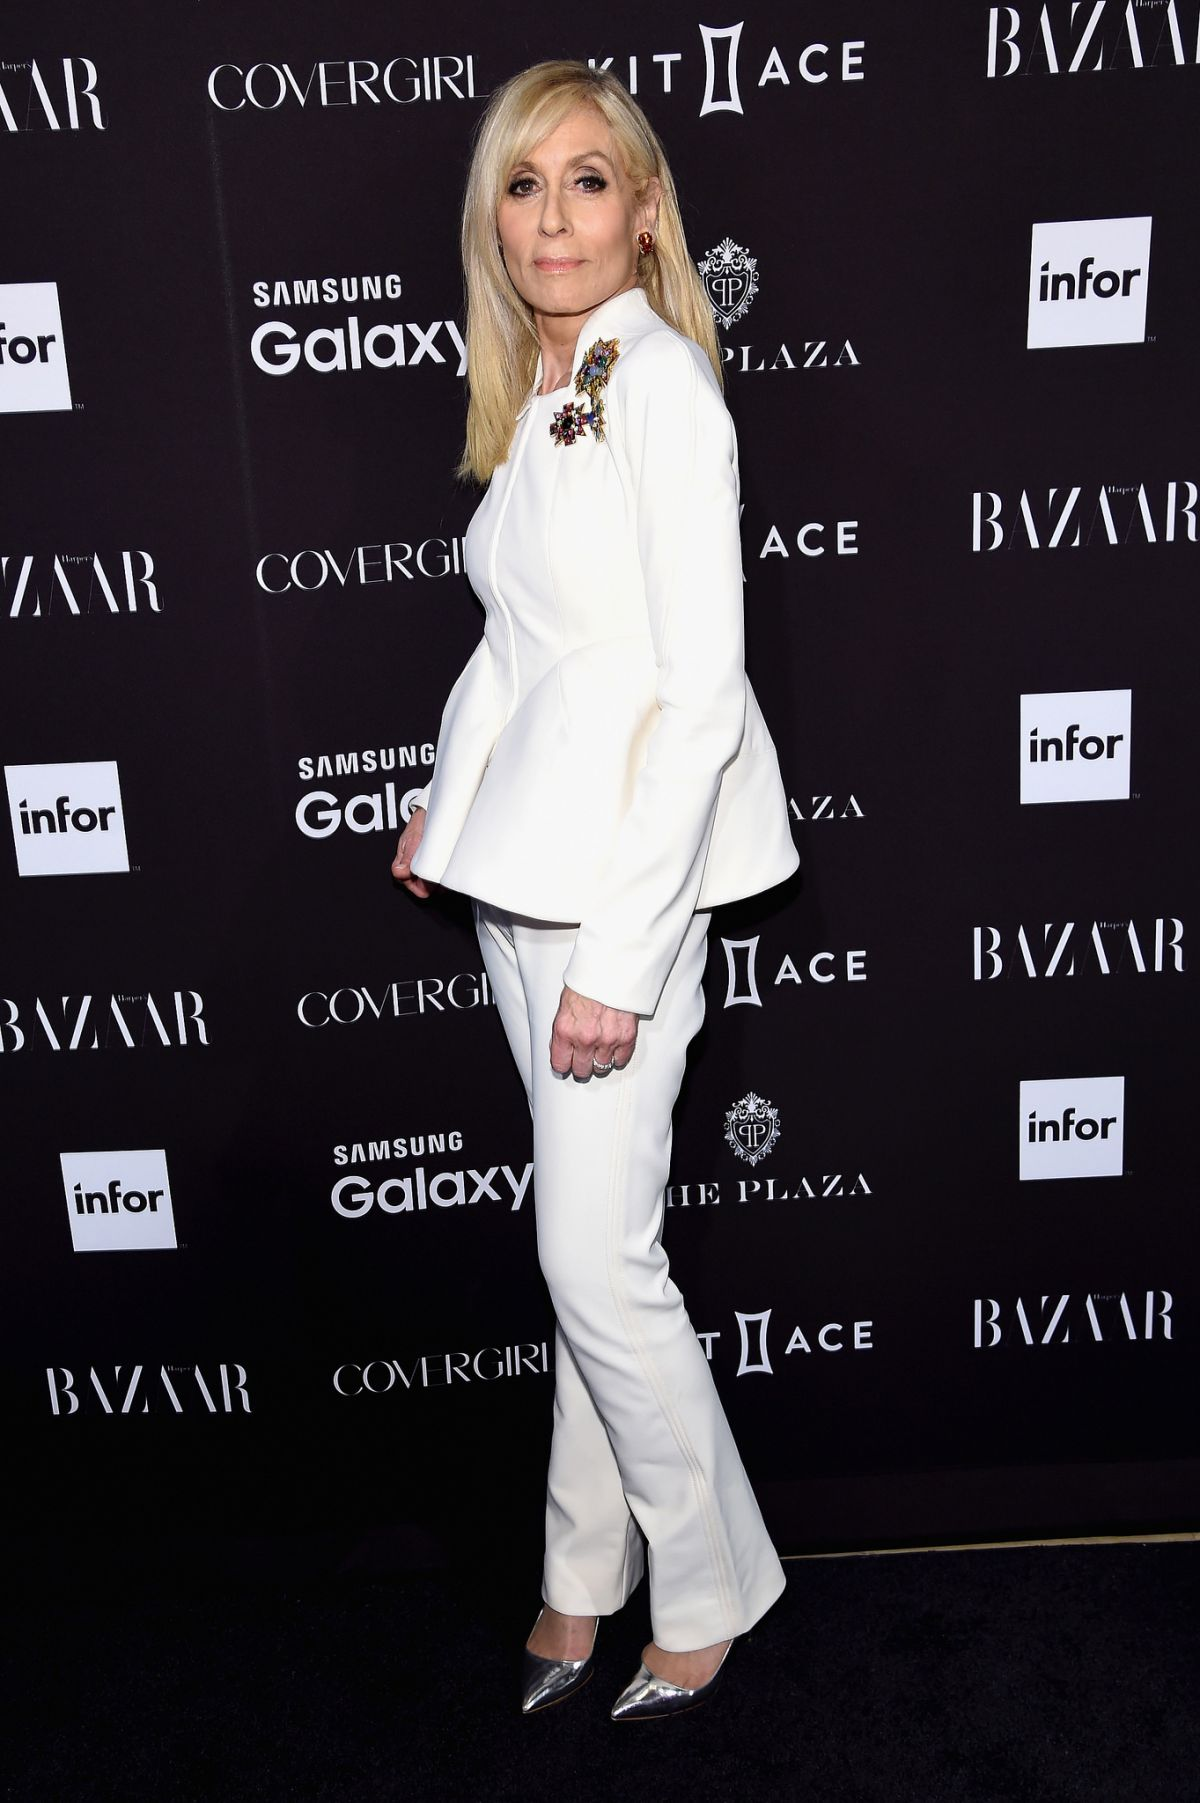 JUDITH LIGHT at 2015 Harper's Bazaar Icons Event in New York 09/16/2015